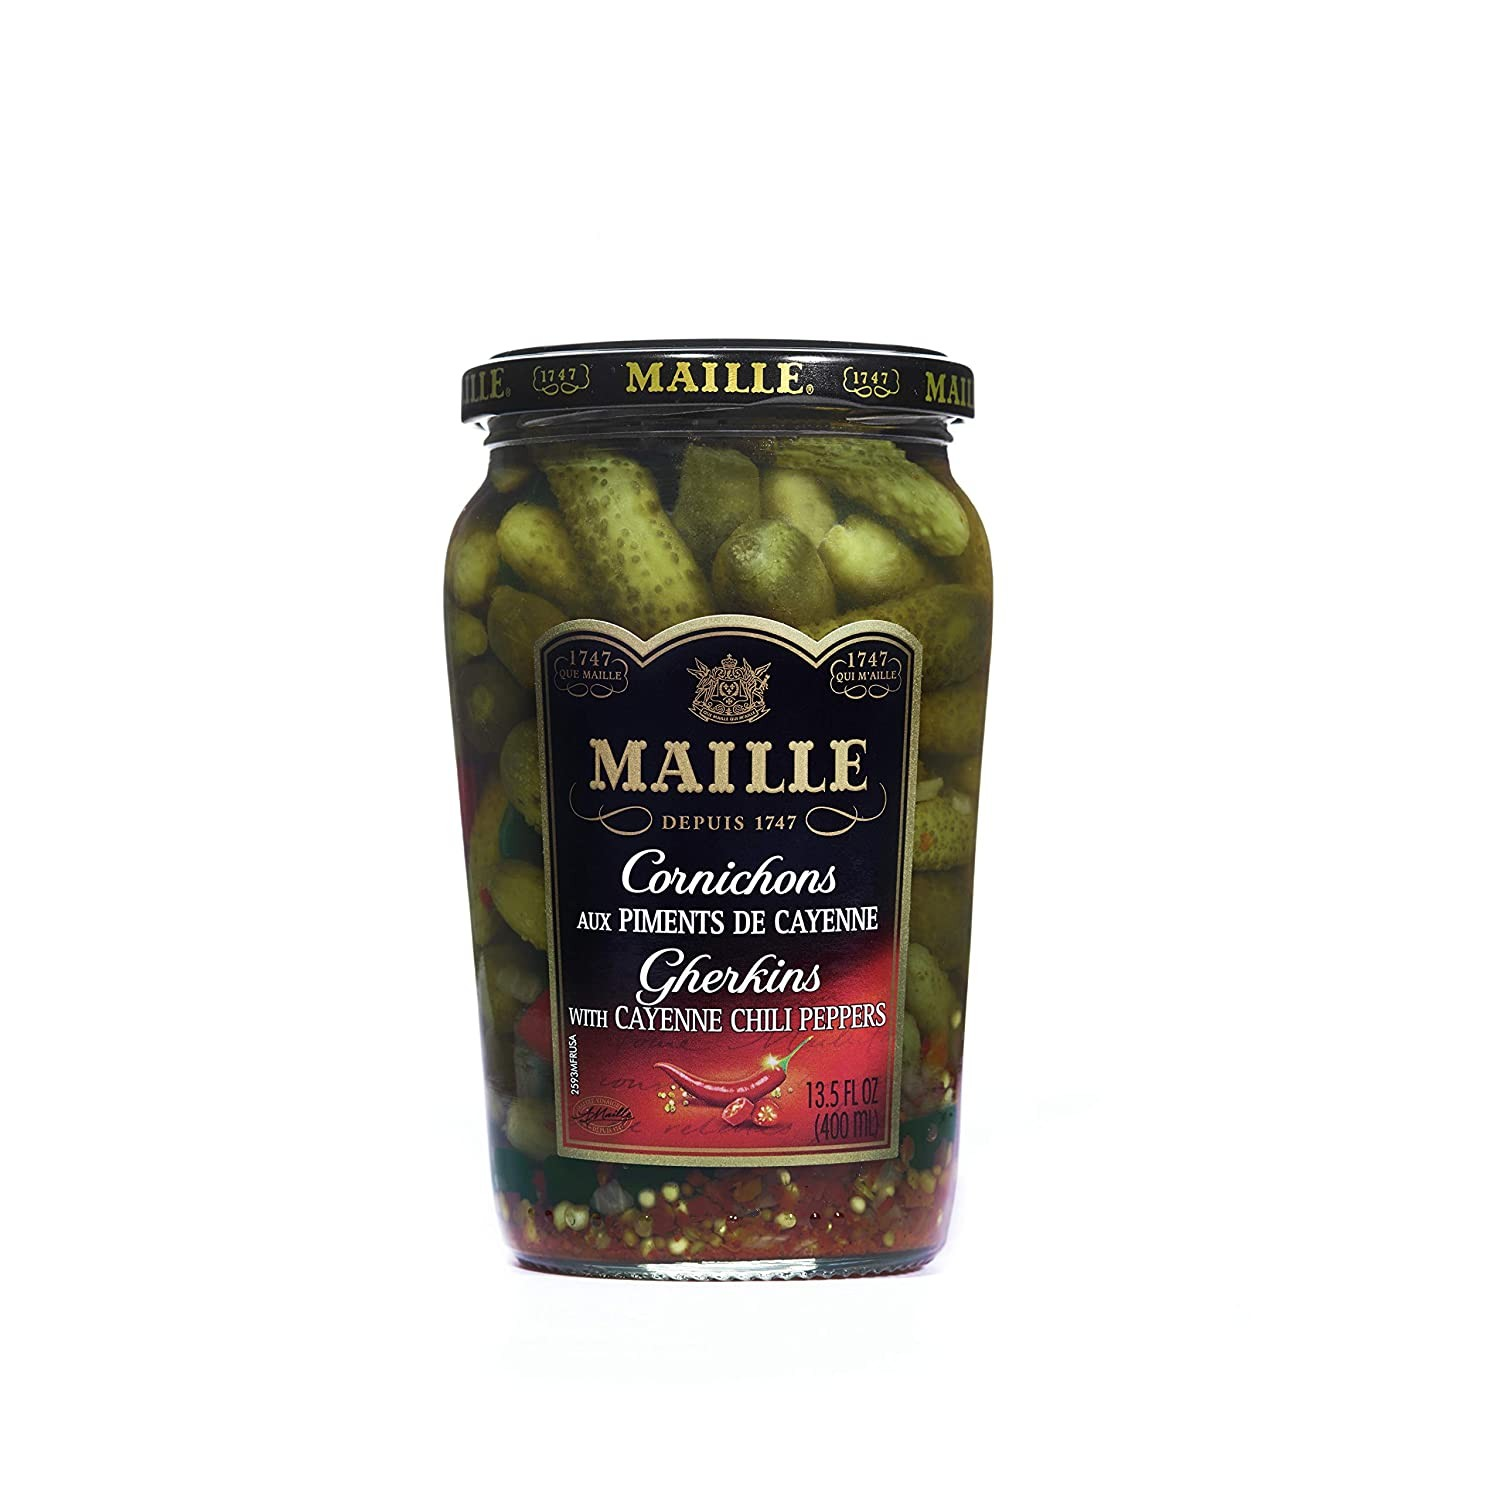 Cornichons & Chicken Noodle Cup-a-Soup by Maille & Lipton, 18,/579 Cases, Ext. Retail $55,556, Newville, PA